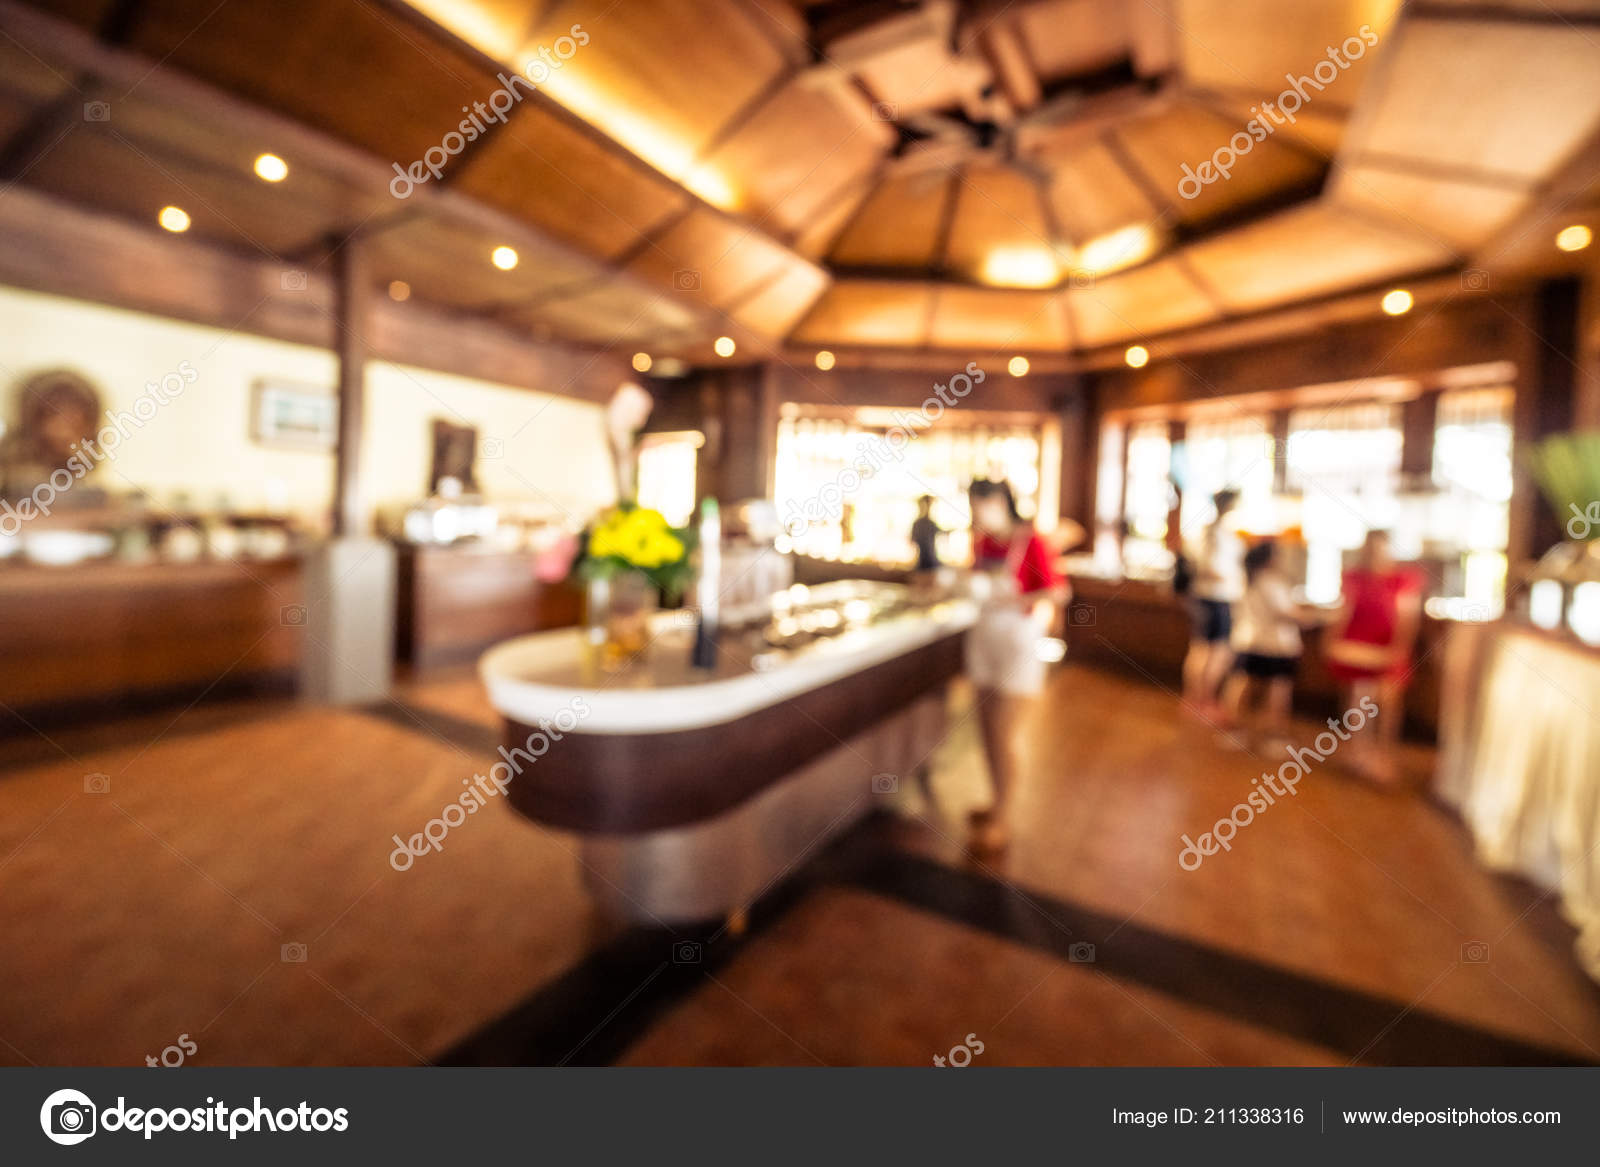 Abstract Blur Restaurant Coffee Shop Cafe Interior Background Stock Photo C Mrsiraphol 211338316